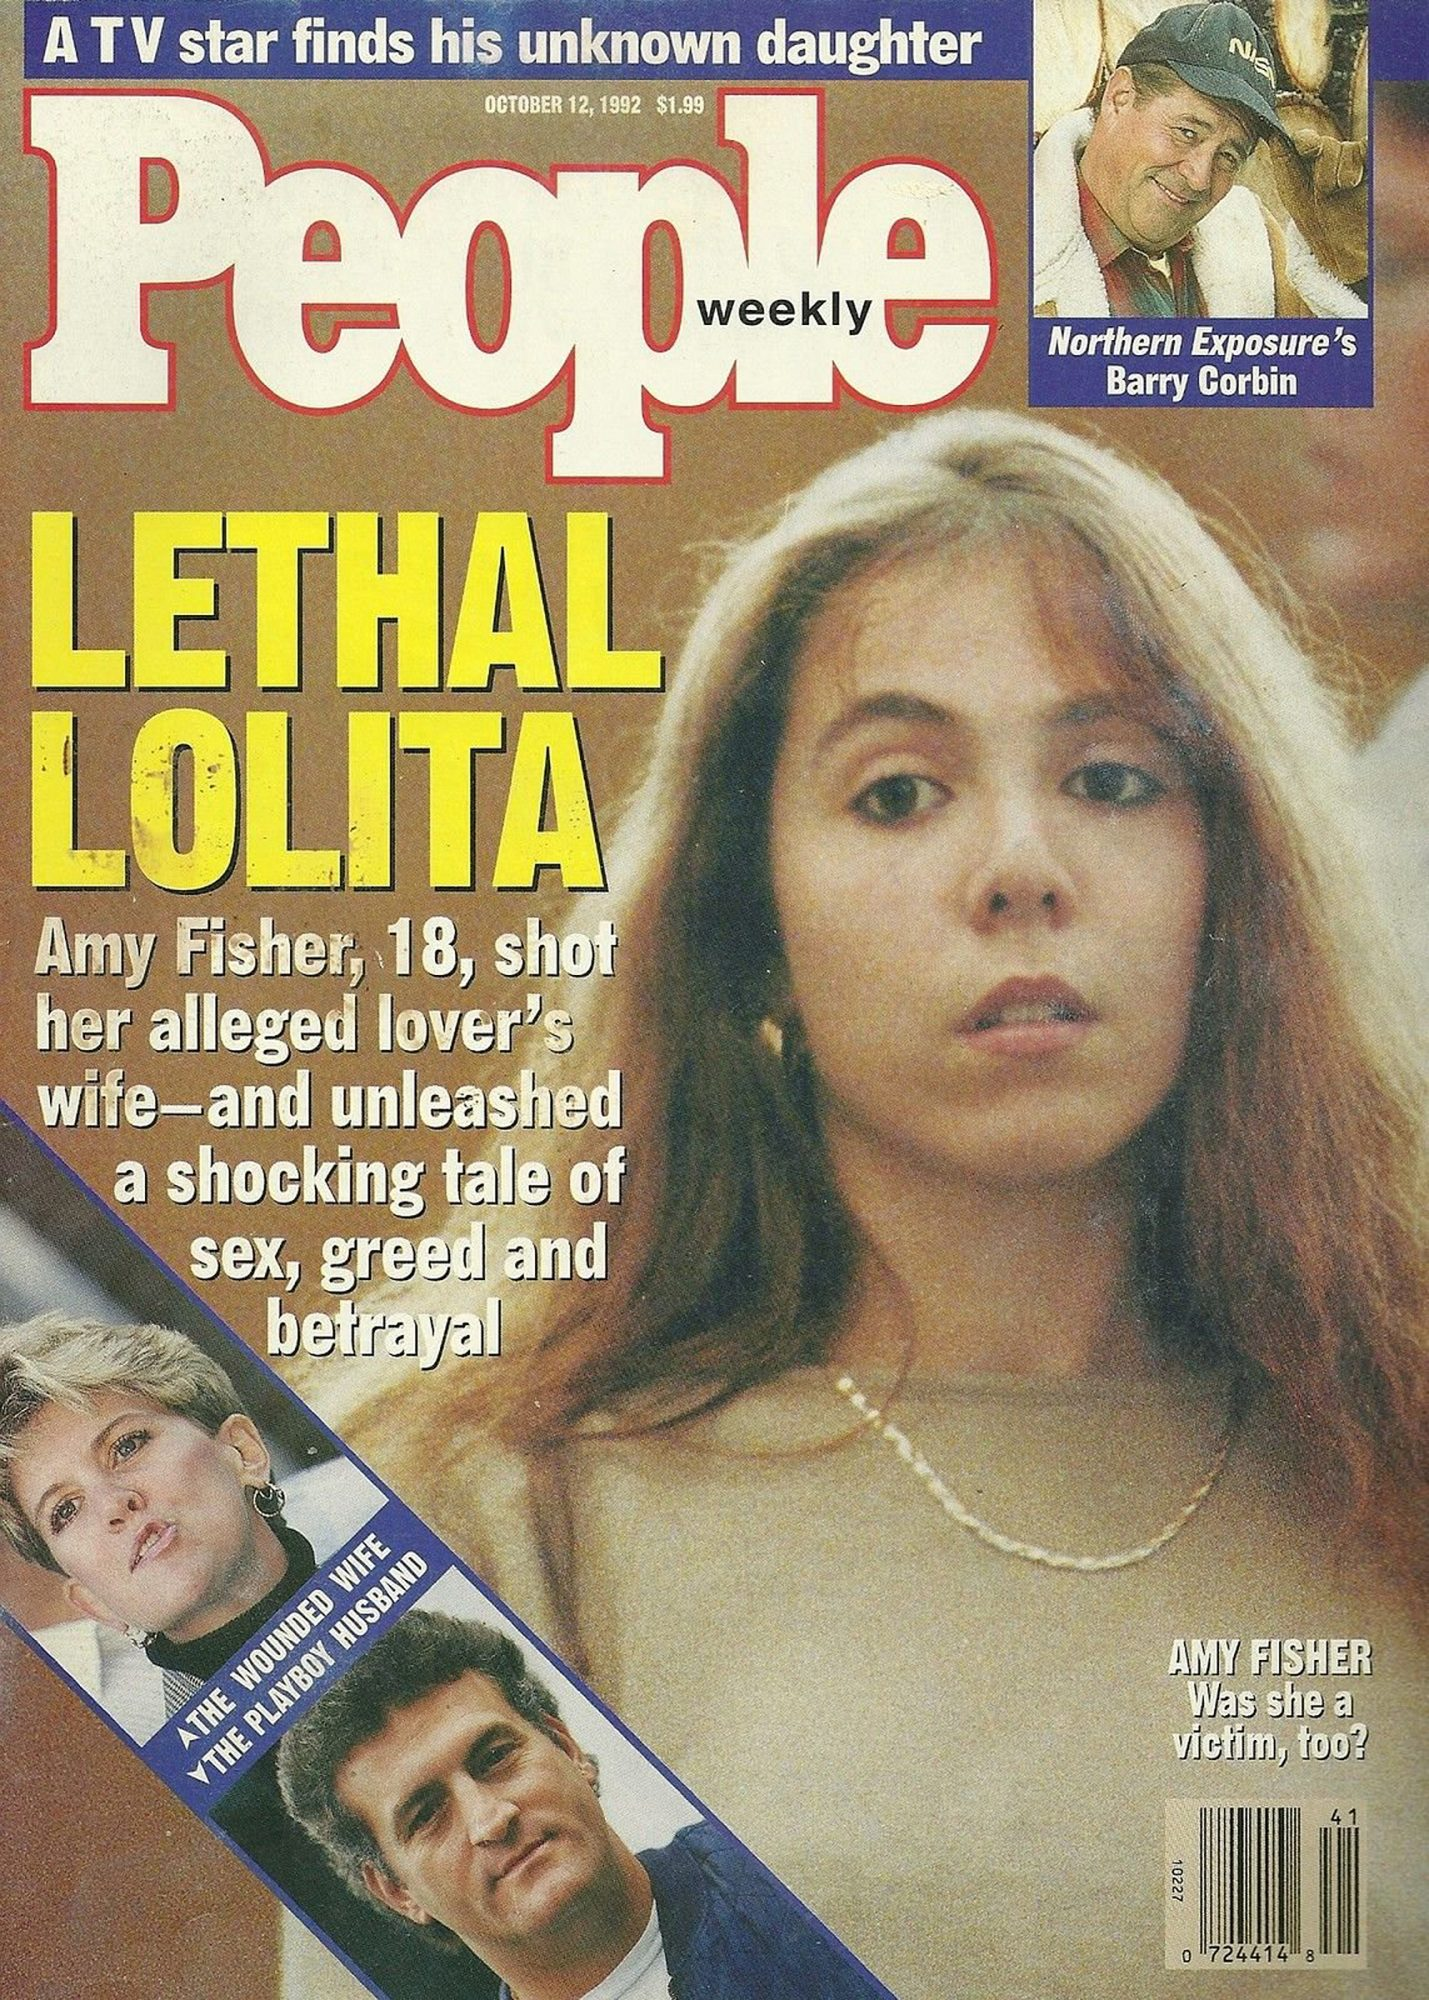 Amy Fisher Long Island Lolita October 12 1992 cover